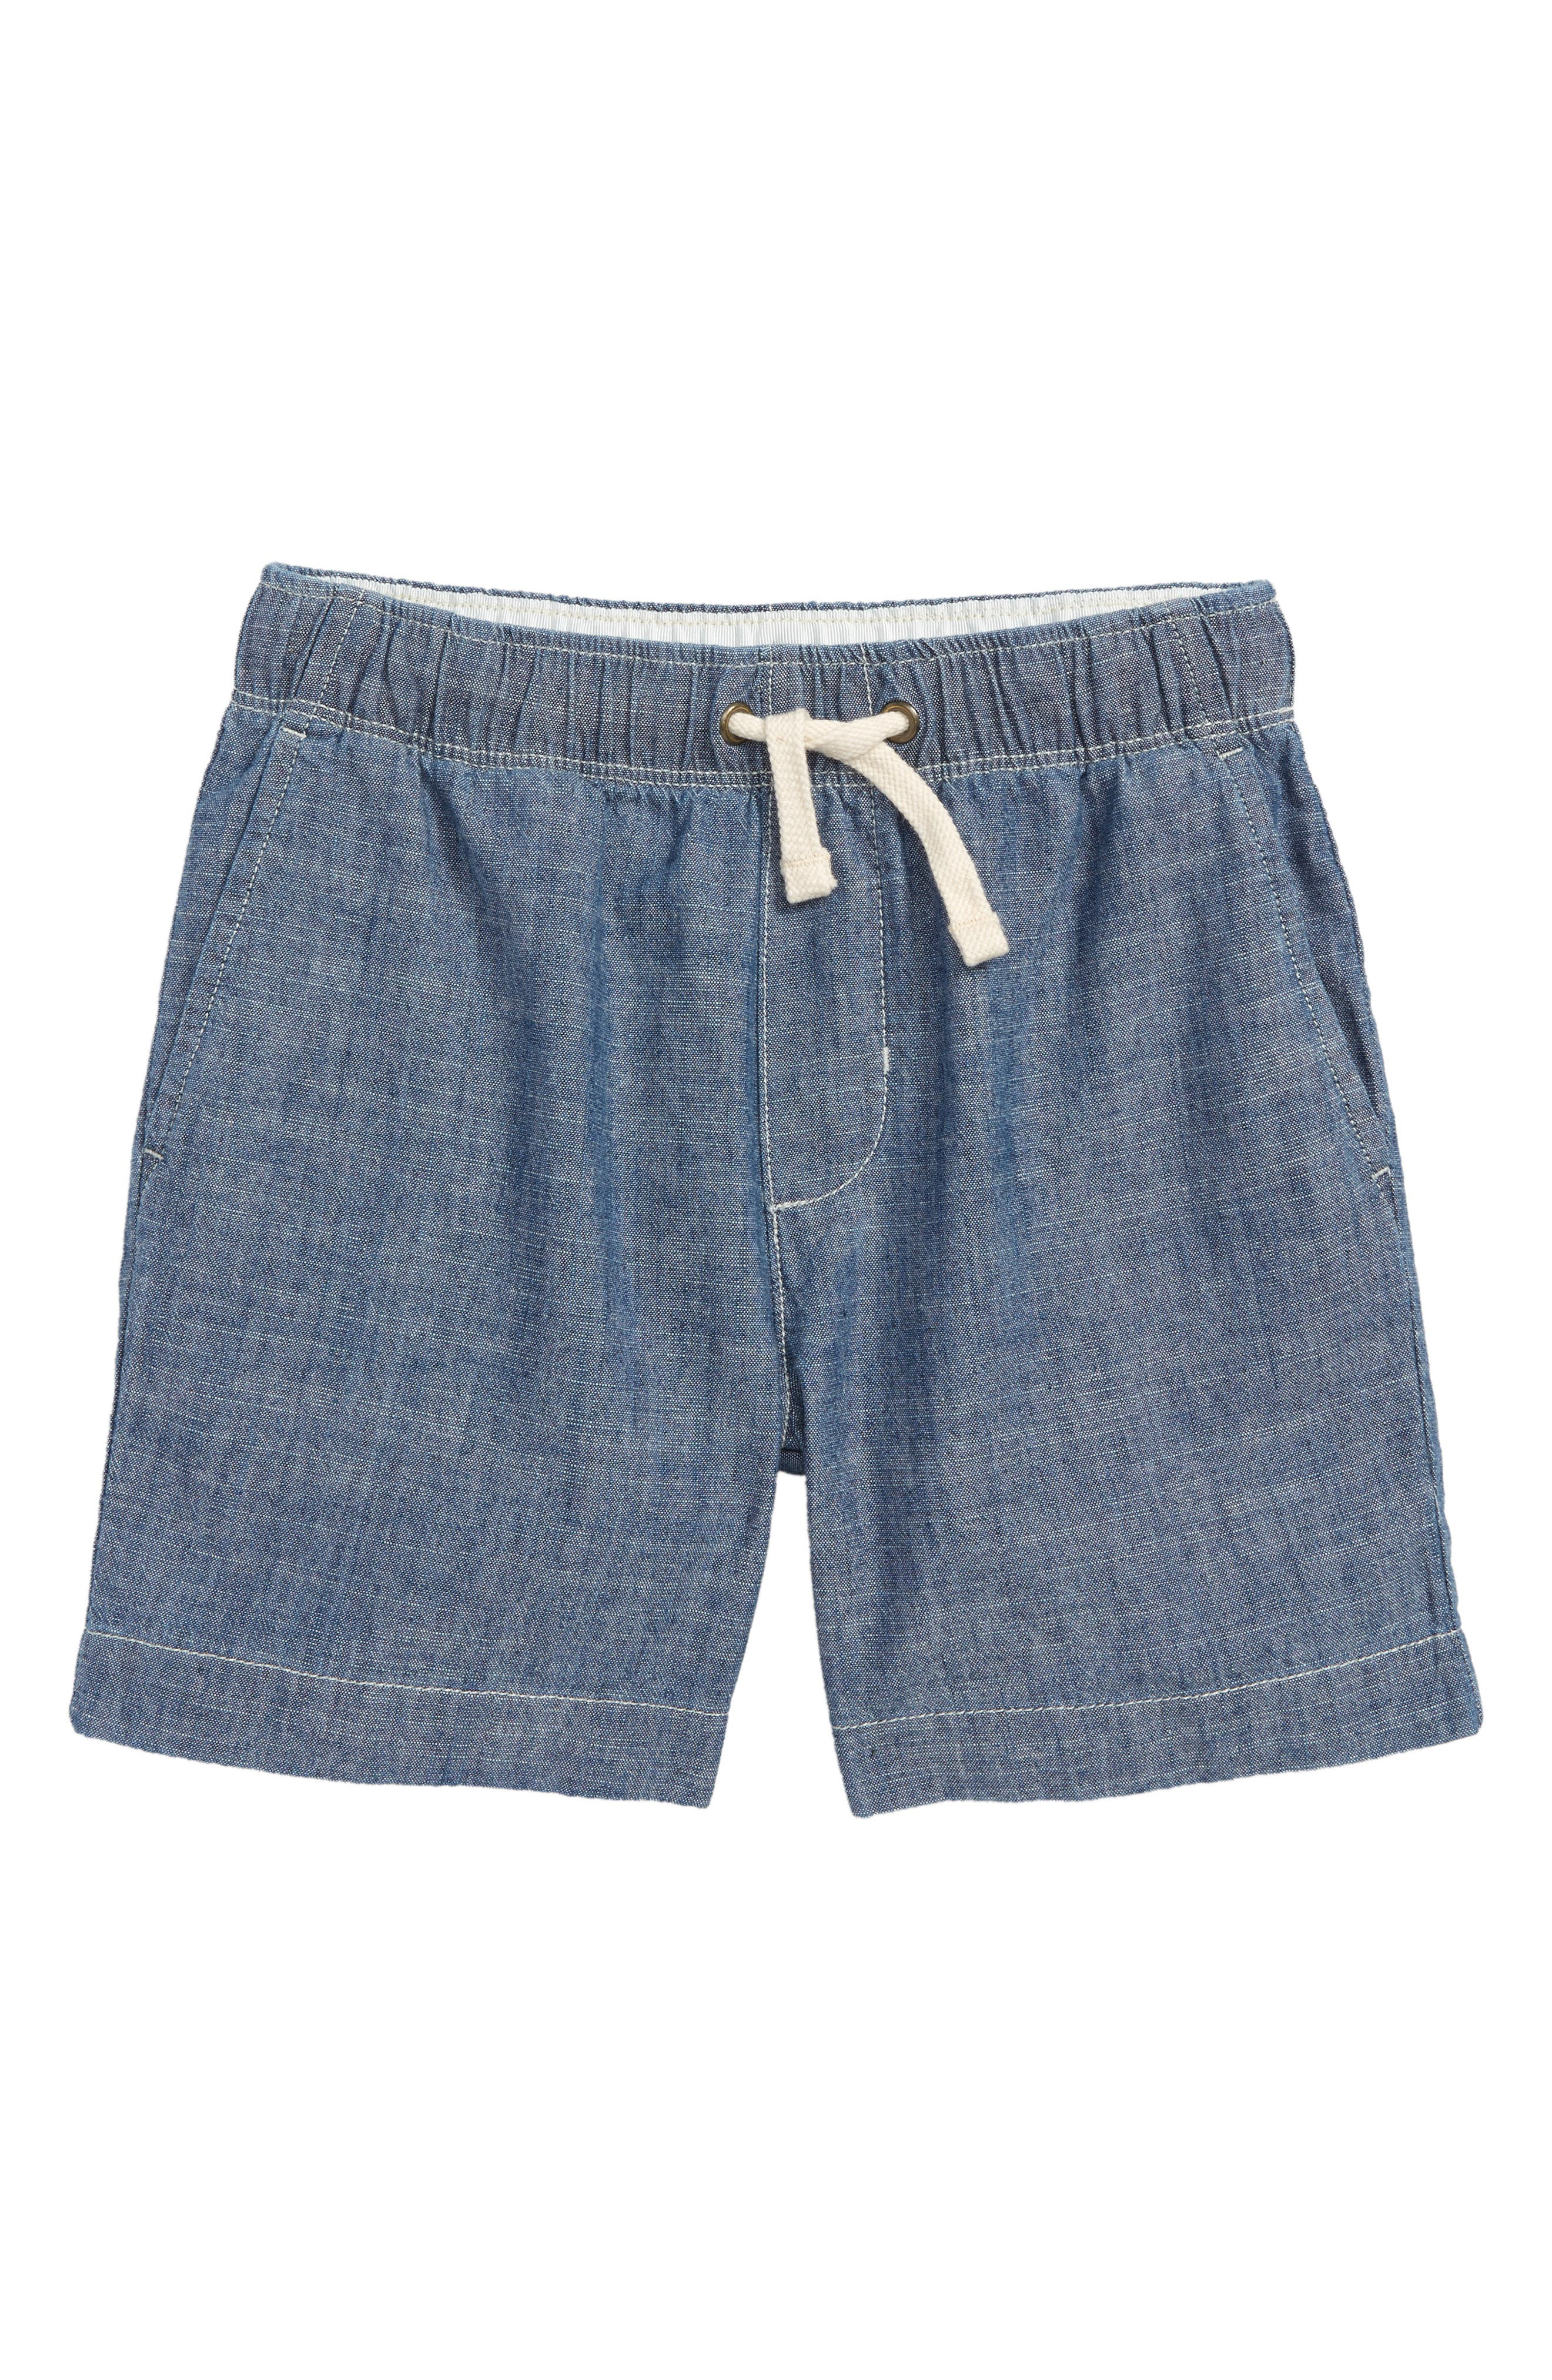 Dock Chambray Shorts,                             Main thumbnail 1, color,                             Atlantic Wash